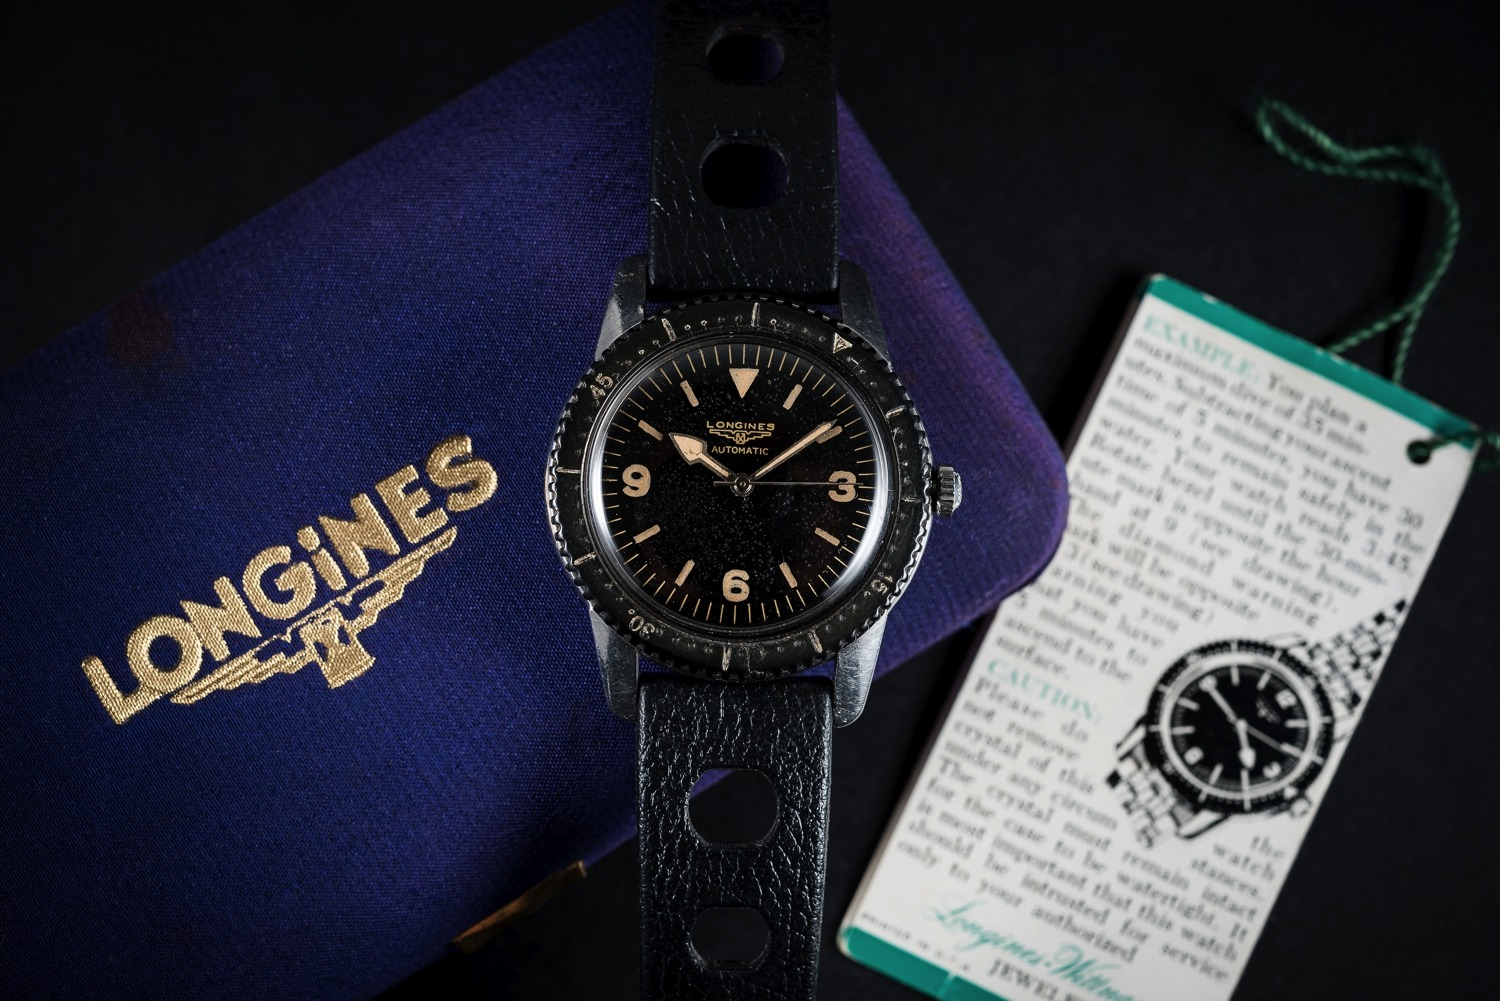 Longines Skin Diver from the 50S